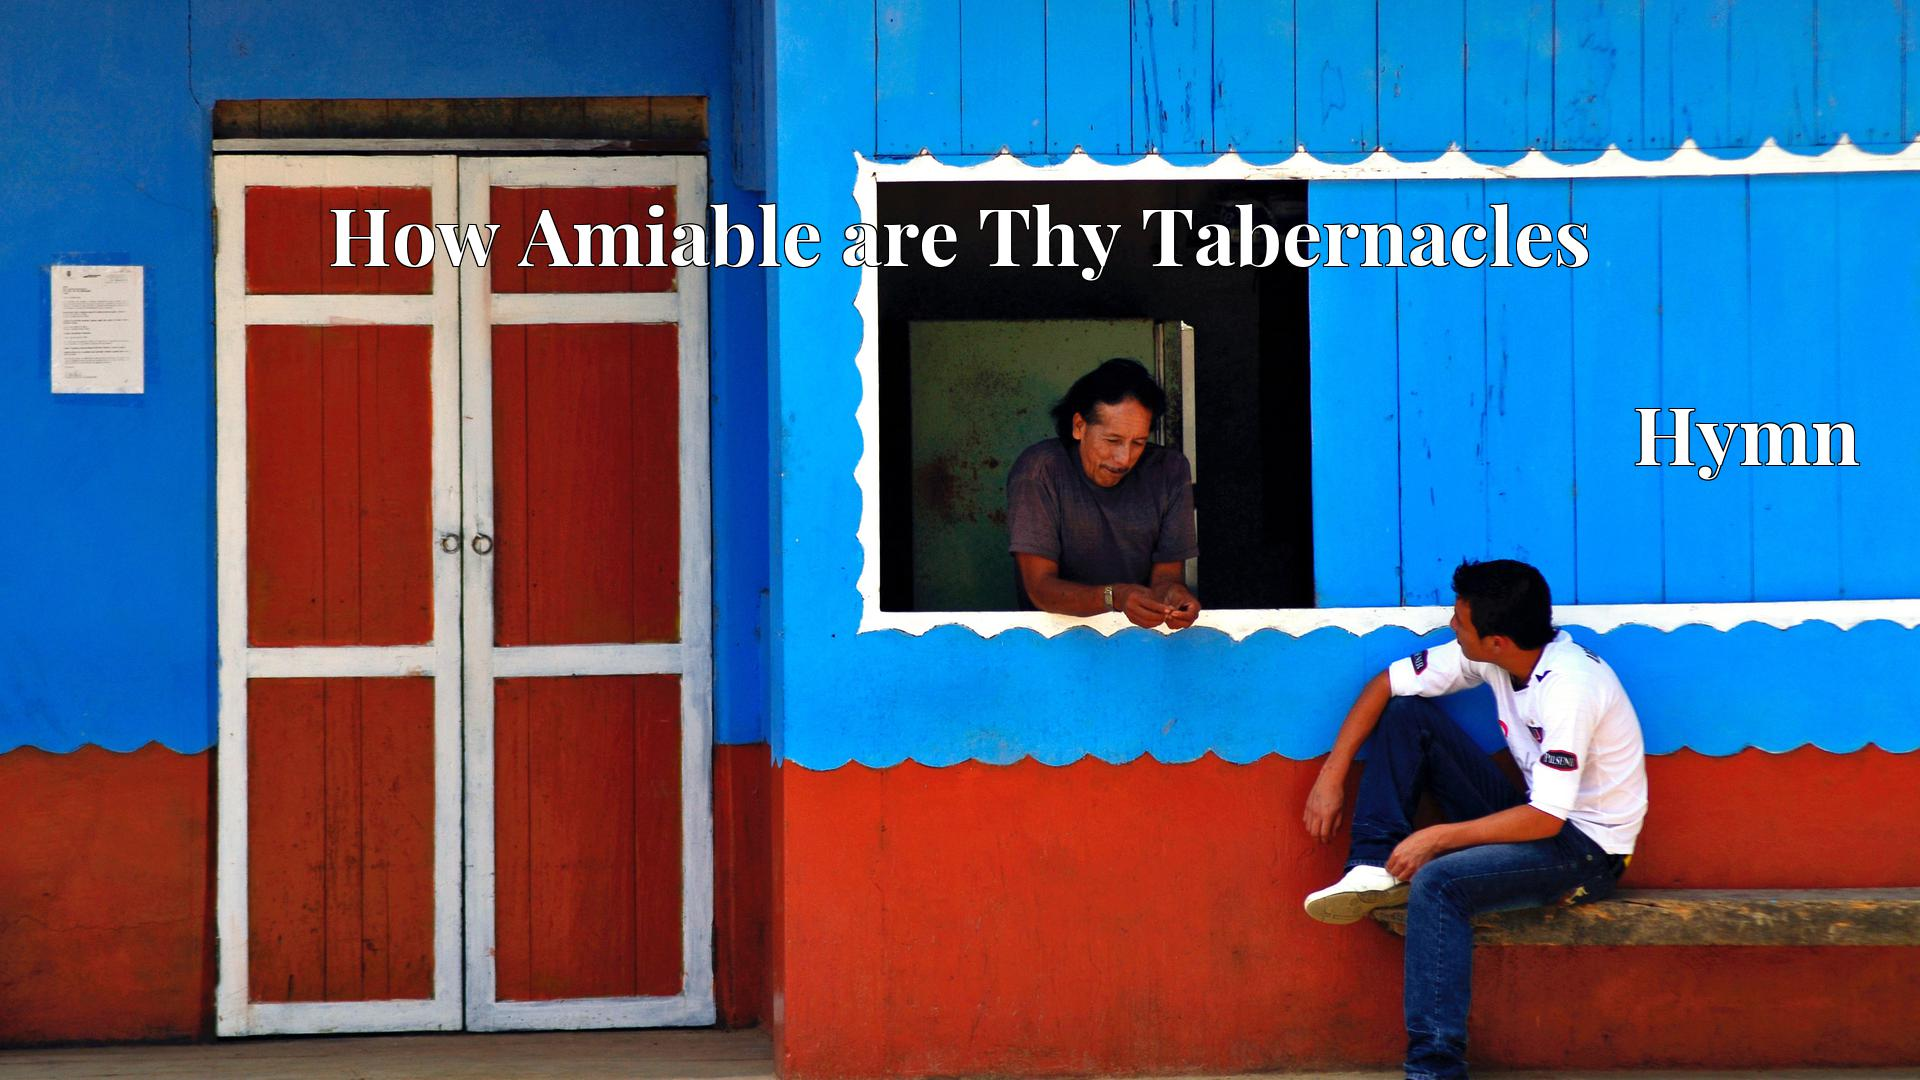 How Amiable are Thy Tabernacles Hymn